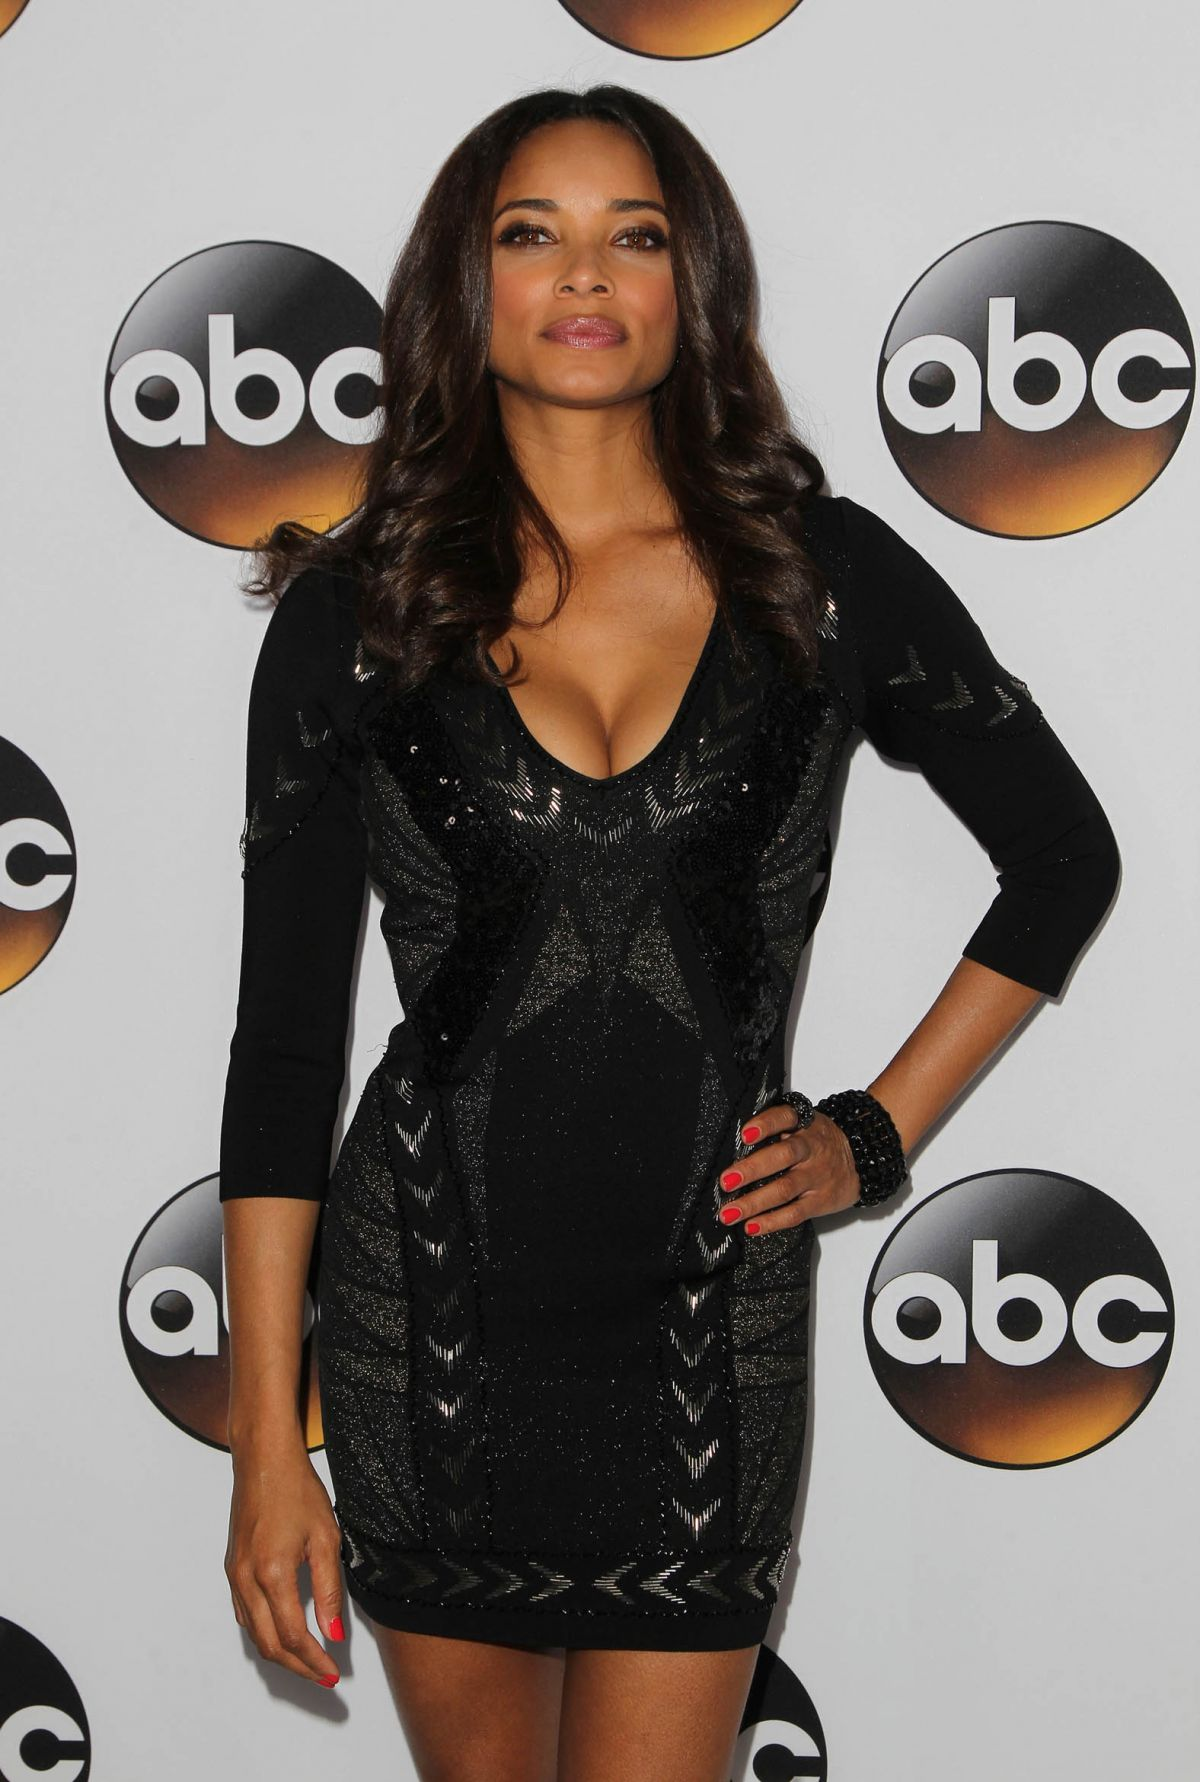 Rochelle Aytes At Disney ABC TCA Winter Press Tour - Celebzz